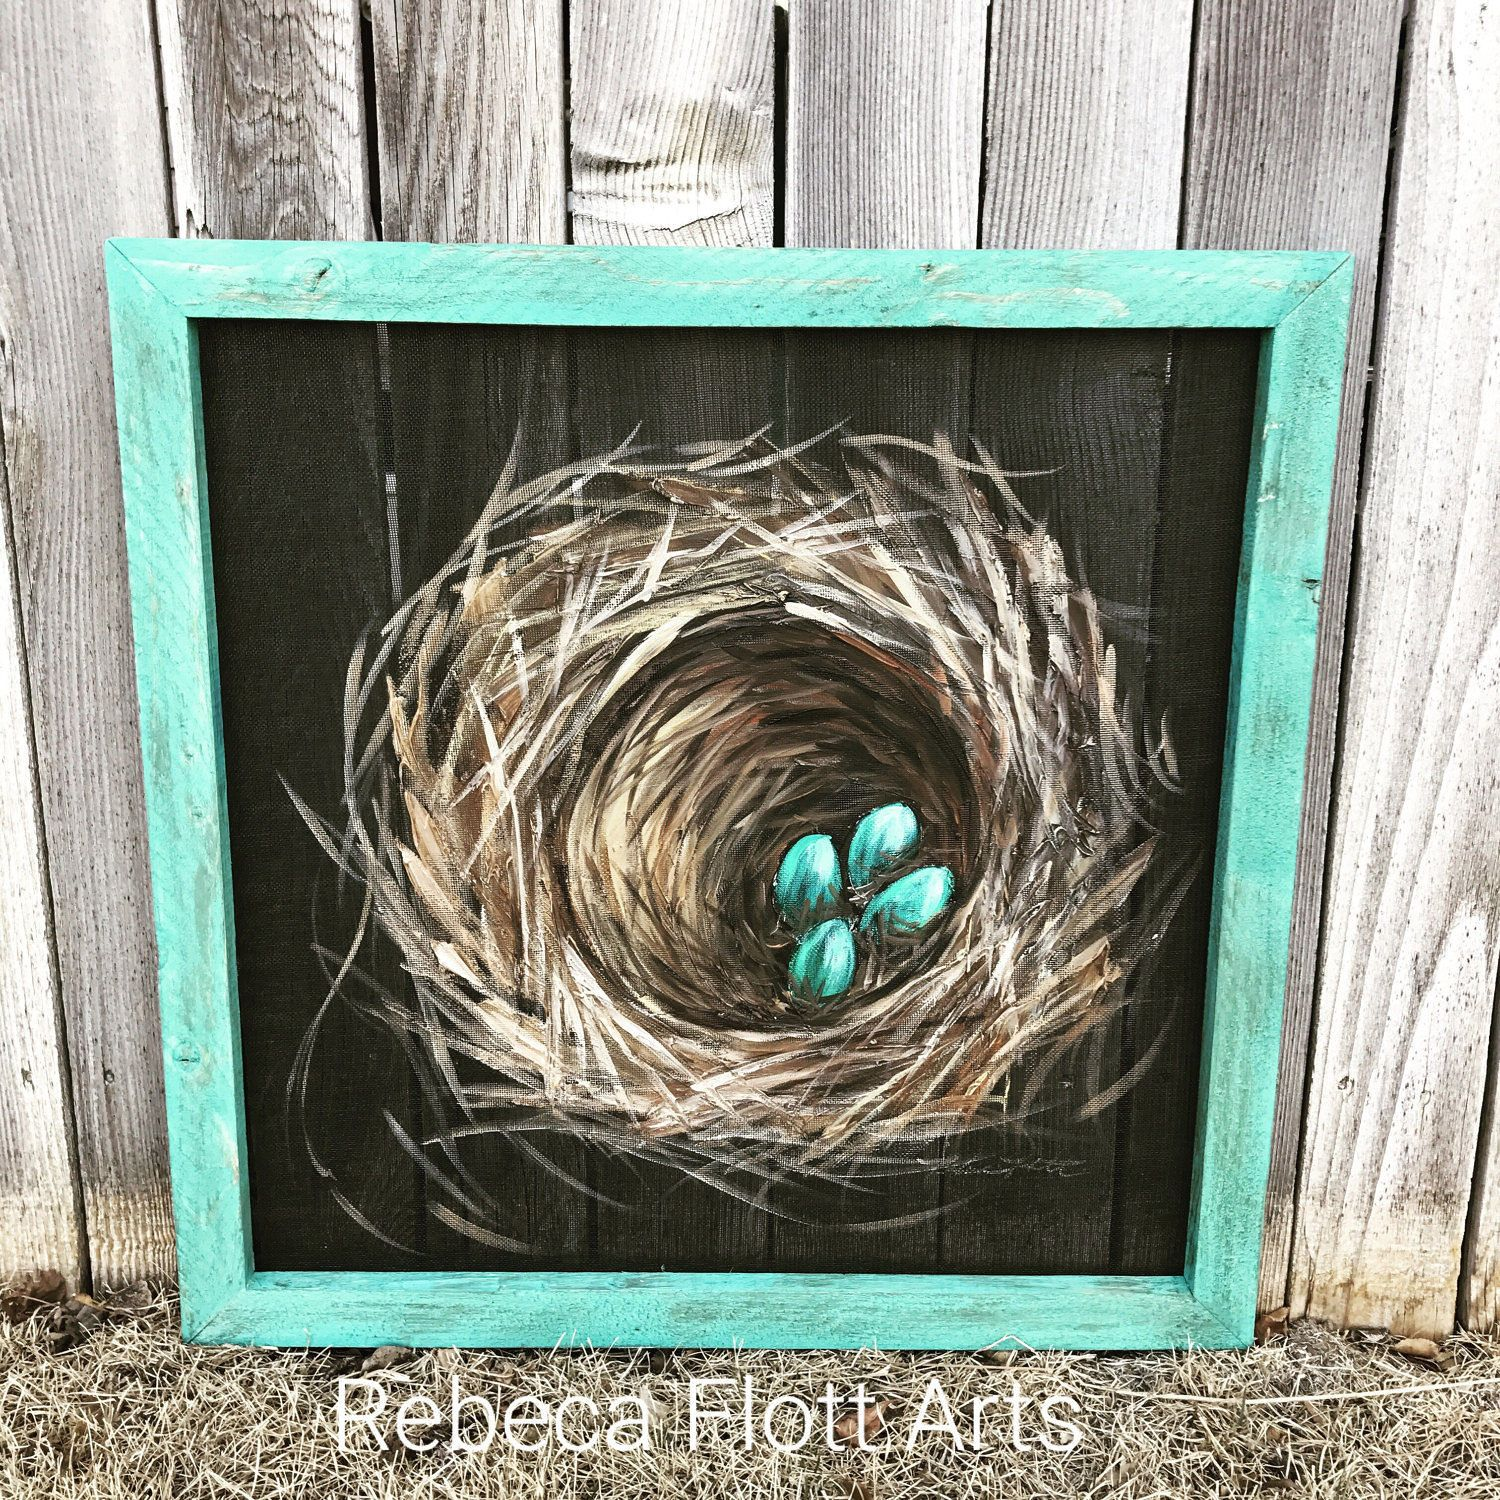 Bless This Nest Nest Painting On Window Screen With A Teal Frame In 2020 Painting On Glass Windows Painting Window Art